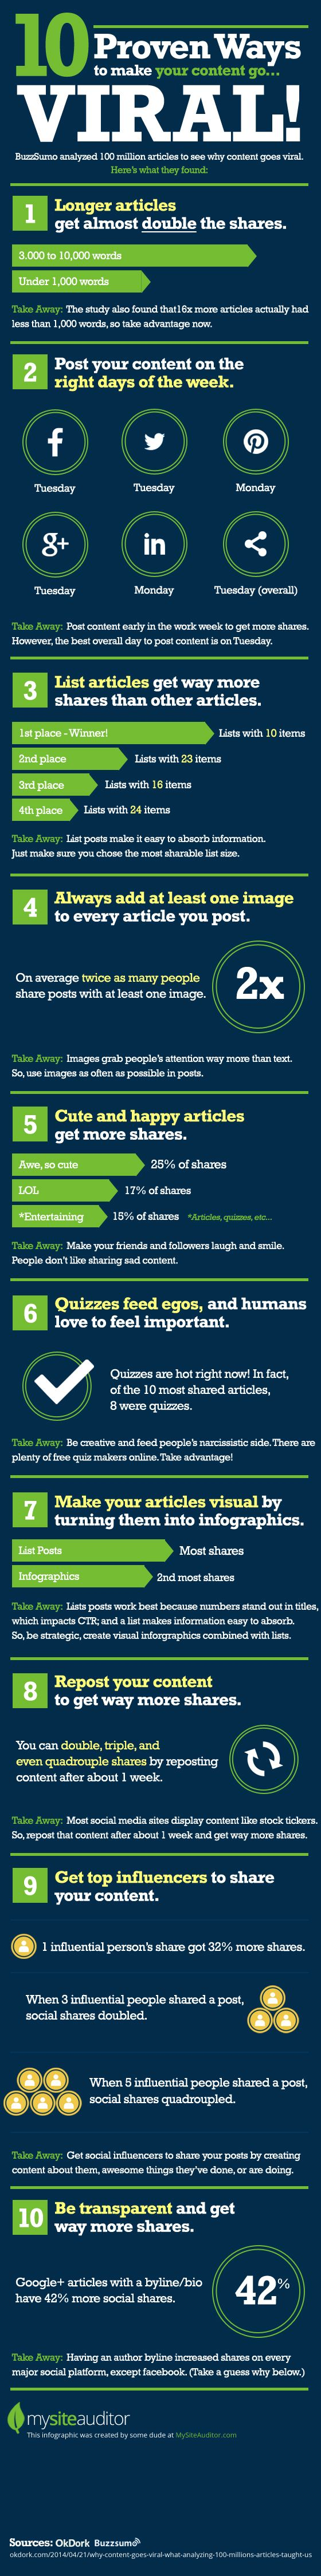 Guide: 10 Ways to Make Your Content Go Viral [Infographic]